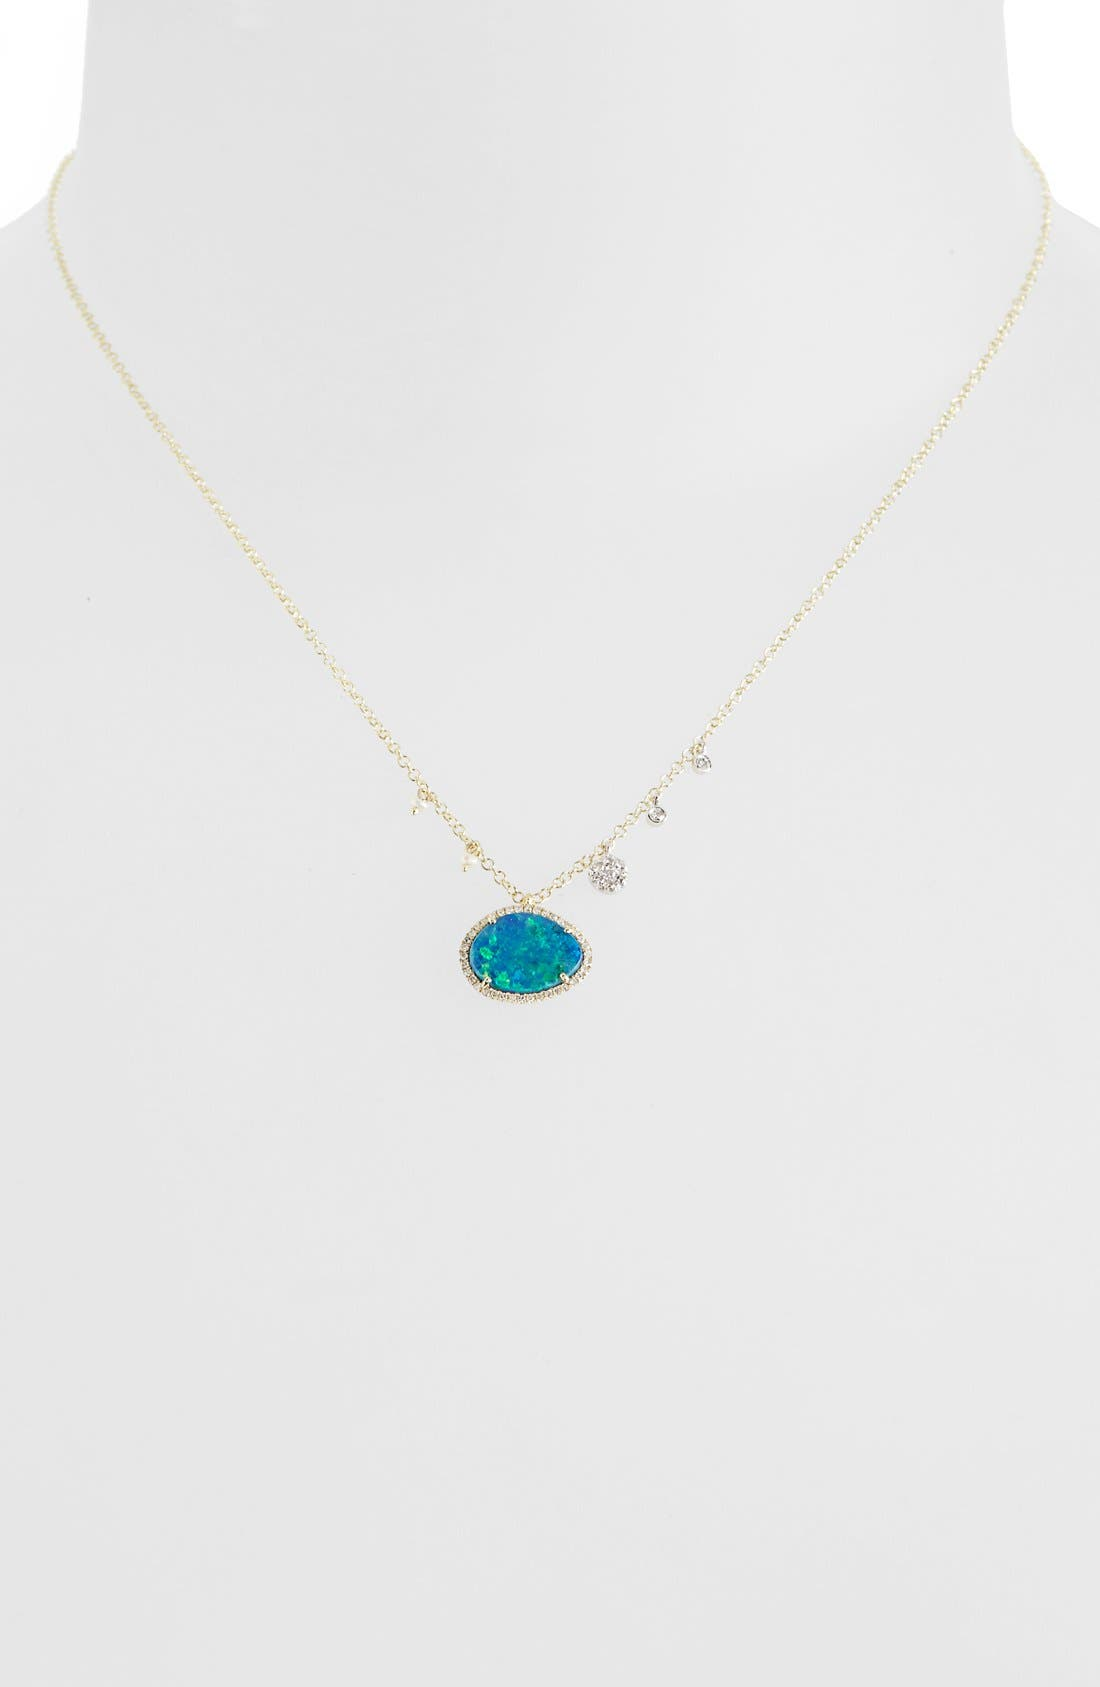 Stone Pendant Necklace,                             Alternate thumbnail 2, color,                             YELLOW GOLD/ BLUE OPAL